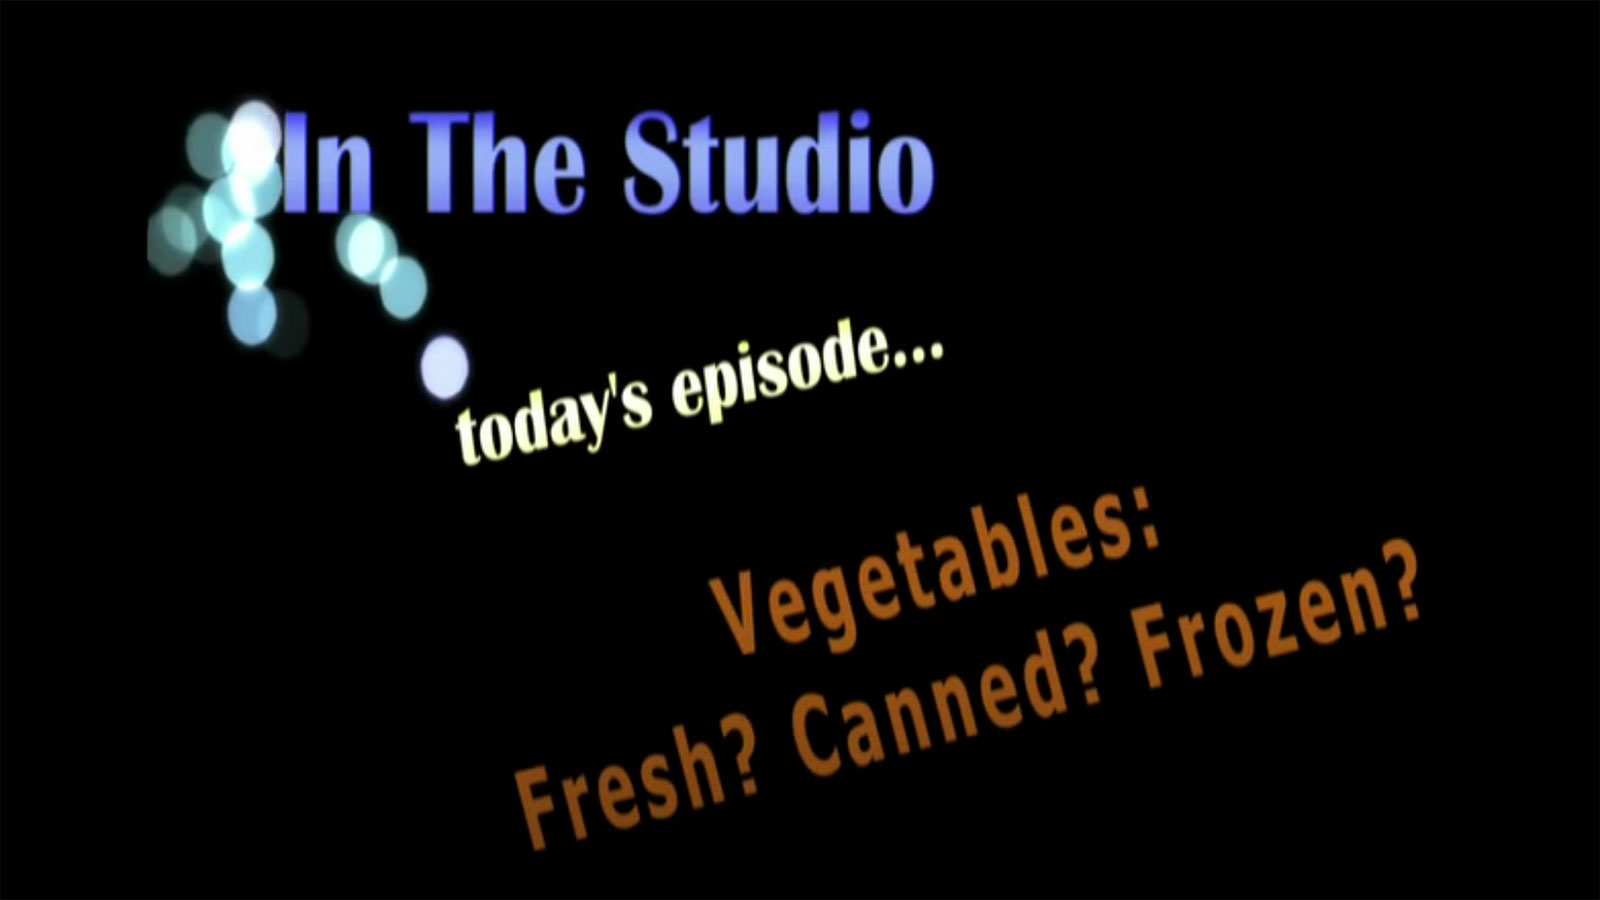 In the Studio: Vegetables: Fresh? Canned? Frozen?